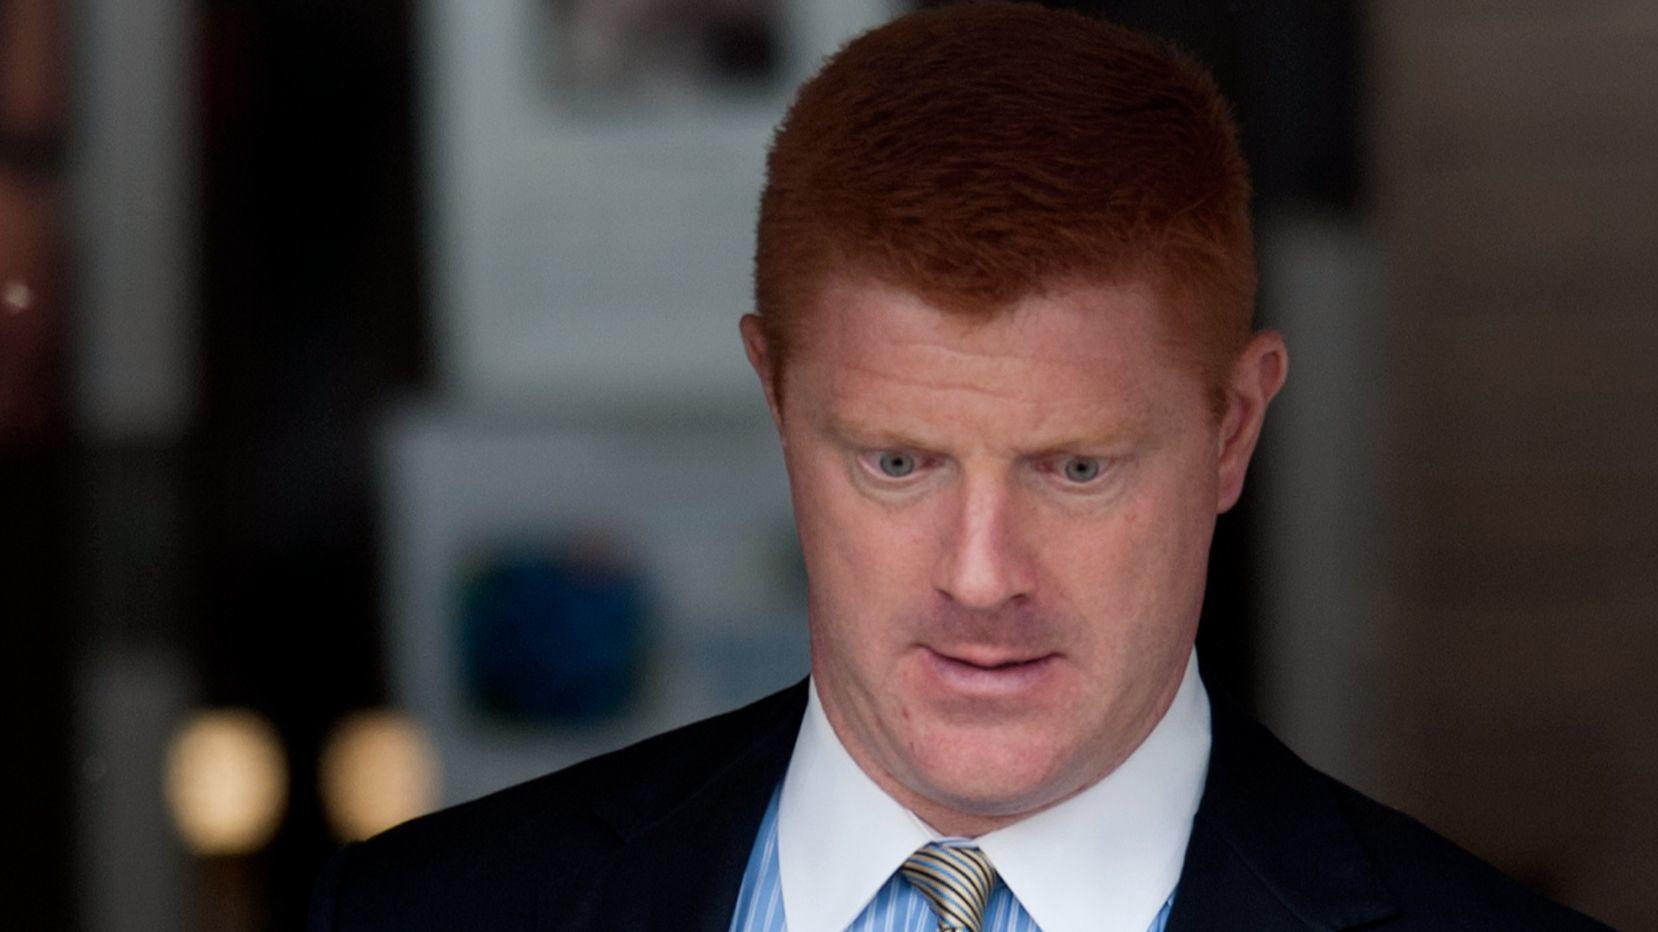 McQueary ends whistleblower lawsuit against Penn State ...